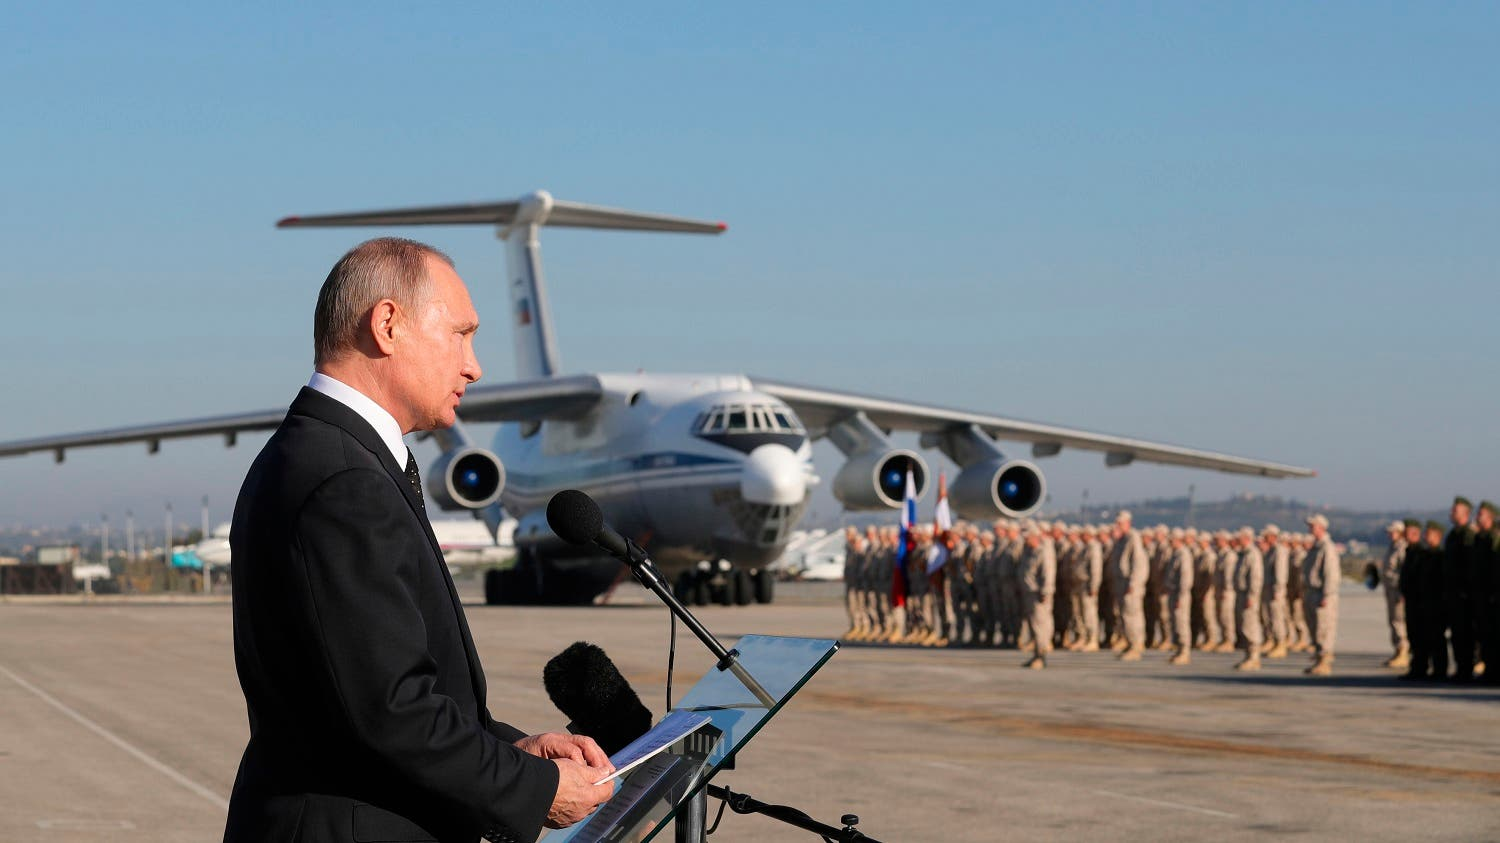 Putin addresses the troops at the Hemeimeem air base in Syria, on Monday, Dec. 11, 2017. (AP)